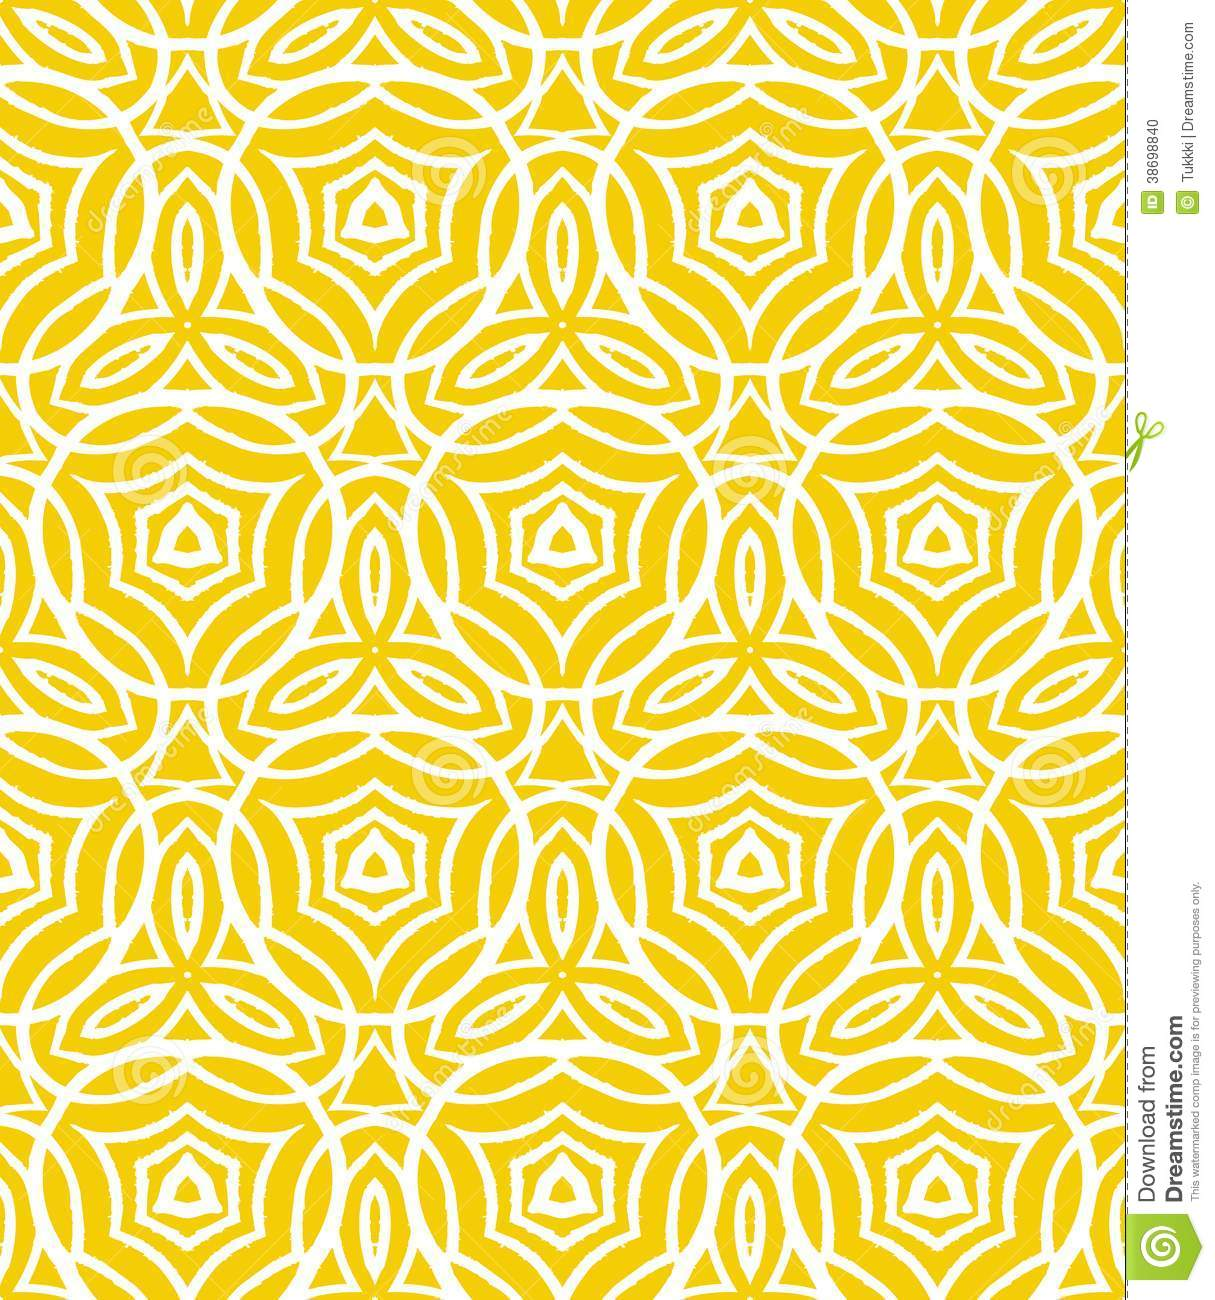 Cute Drawing Wallpaper Download Vintage Art Deco Pattern With Curved Lines Stock Vector